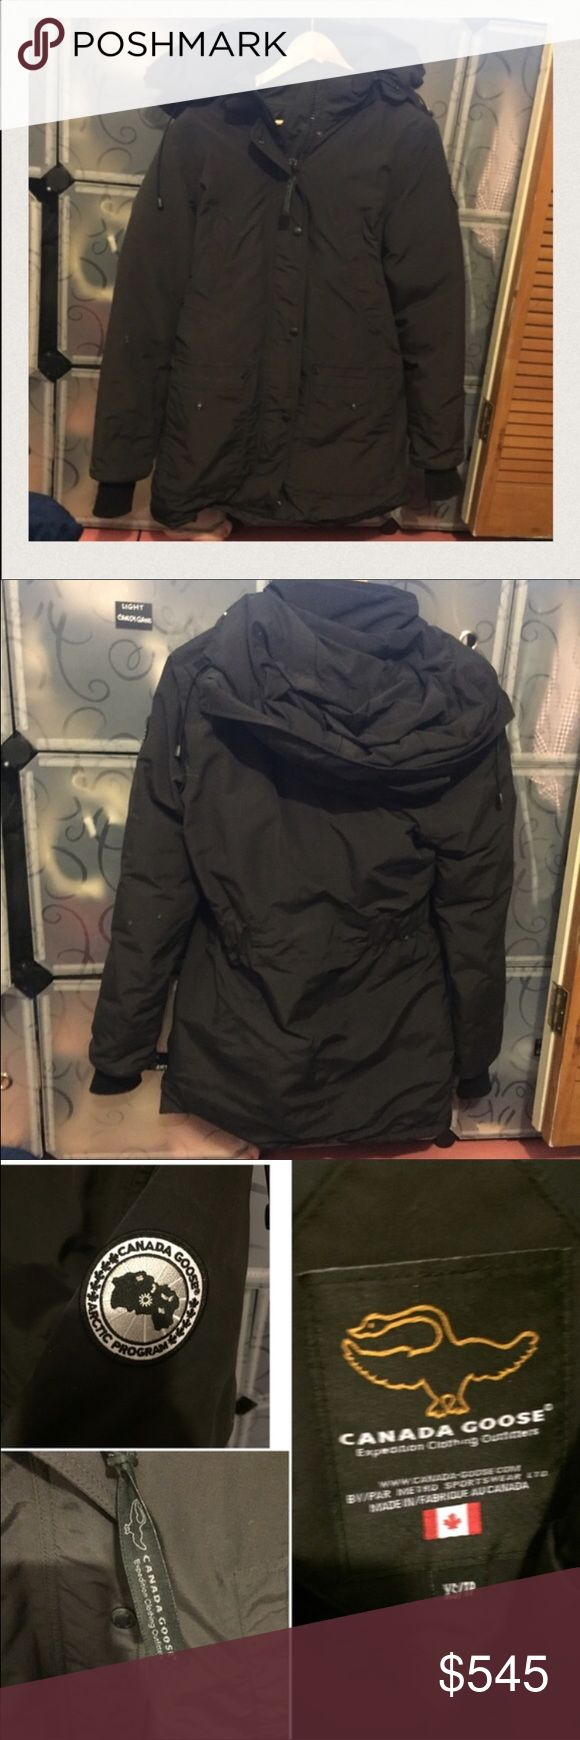 Canada goose trillium parka black XS jacket Only worn a few times. In great condition. Retails $900. Price negotiable but please be reasonable and do not lowball. Poshmark offers free authentication concierge service on anything over $500 so don't worry about its authenticity. It will have to be approved by poshmark before shipping to you. Canada goose trillium parka black XS Canada Goose Jackets & Coats